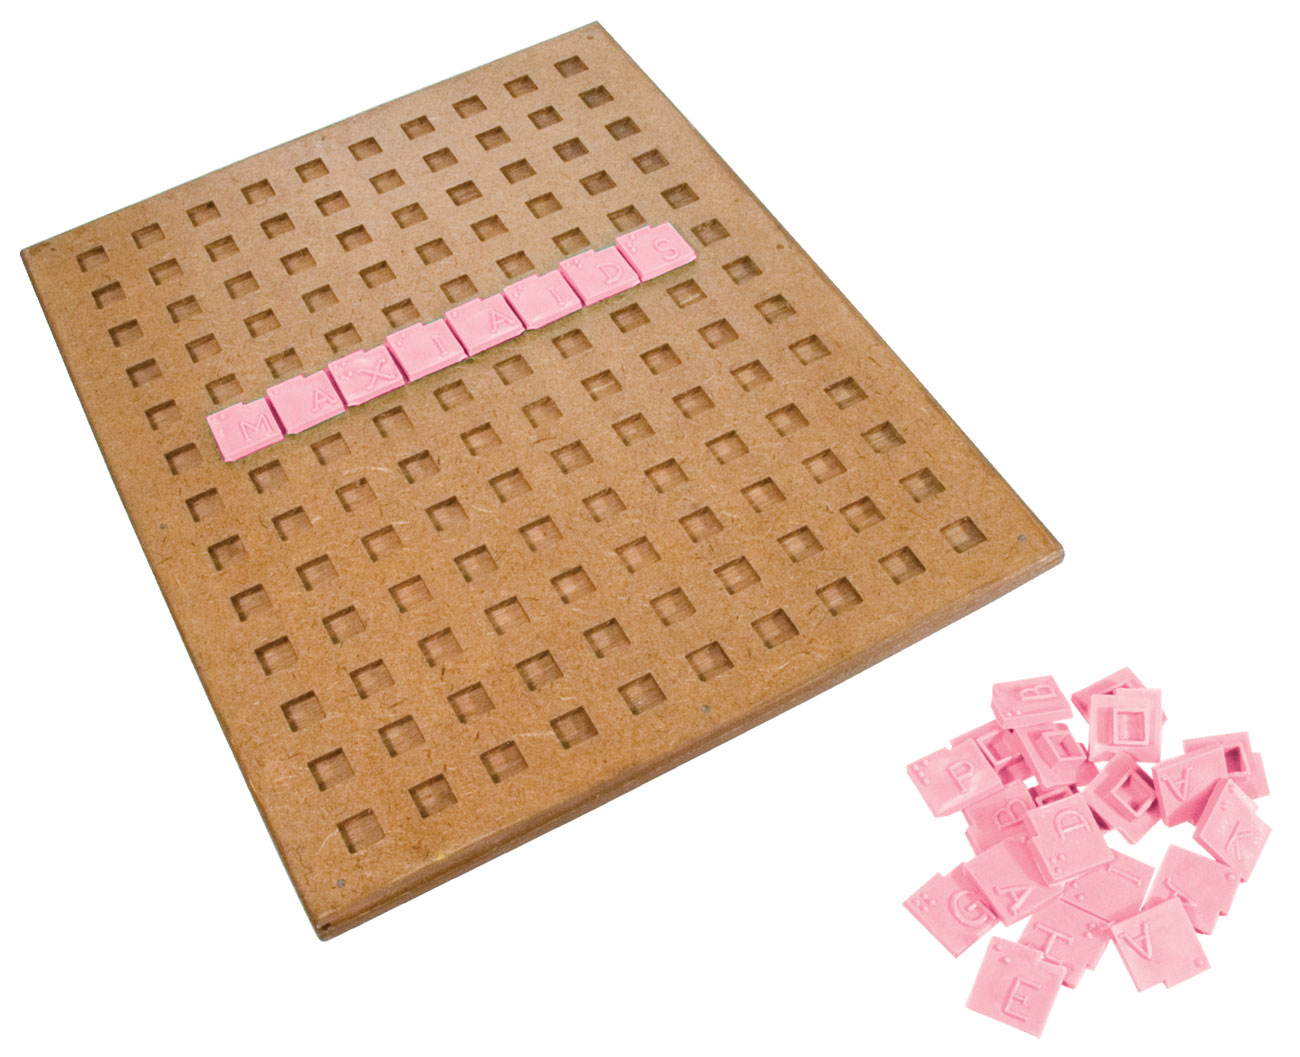 Tactile-Braille Crossword Puzzle Game - click to view larger image